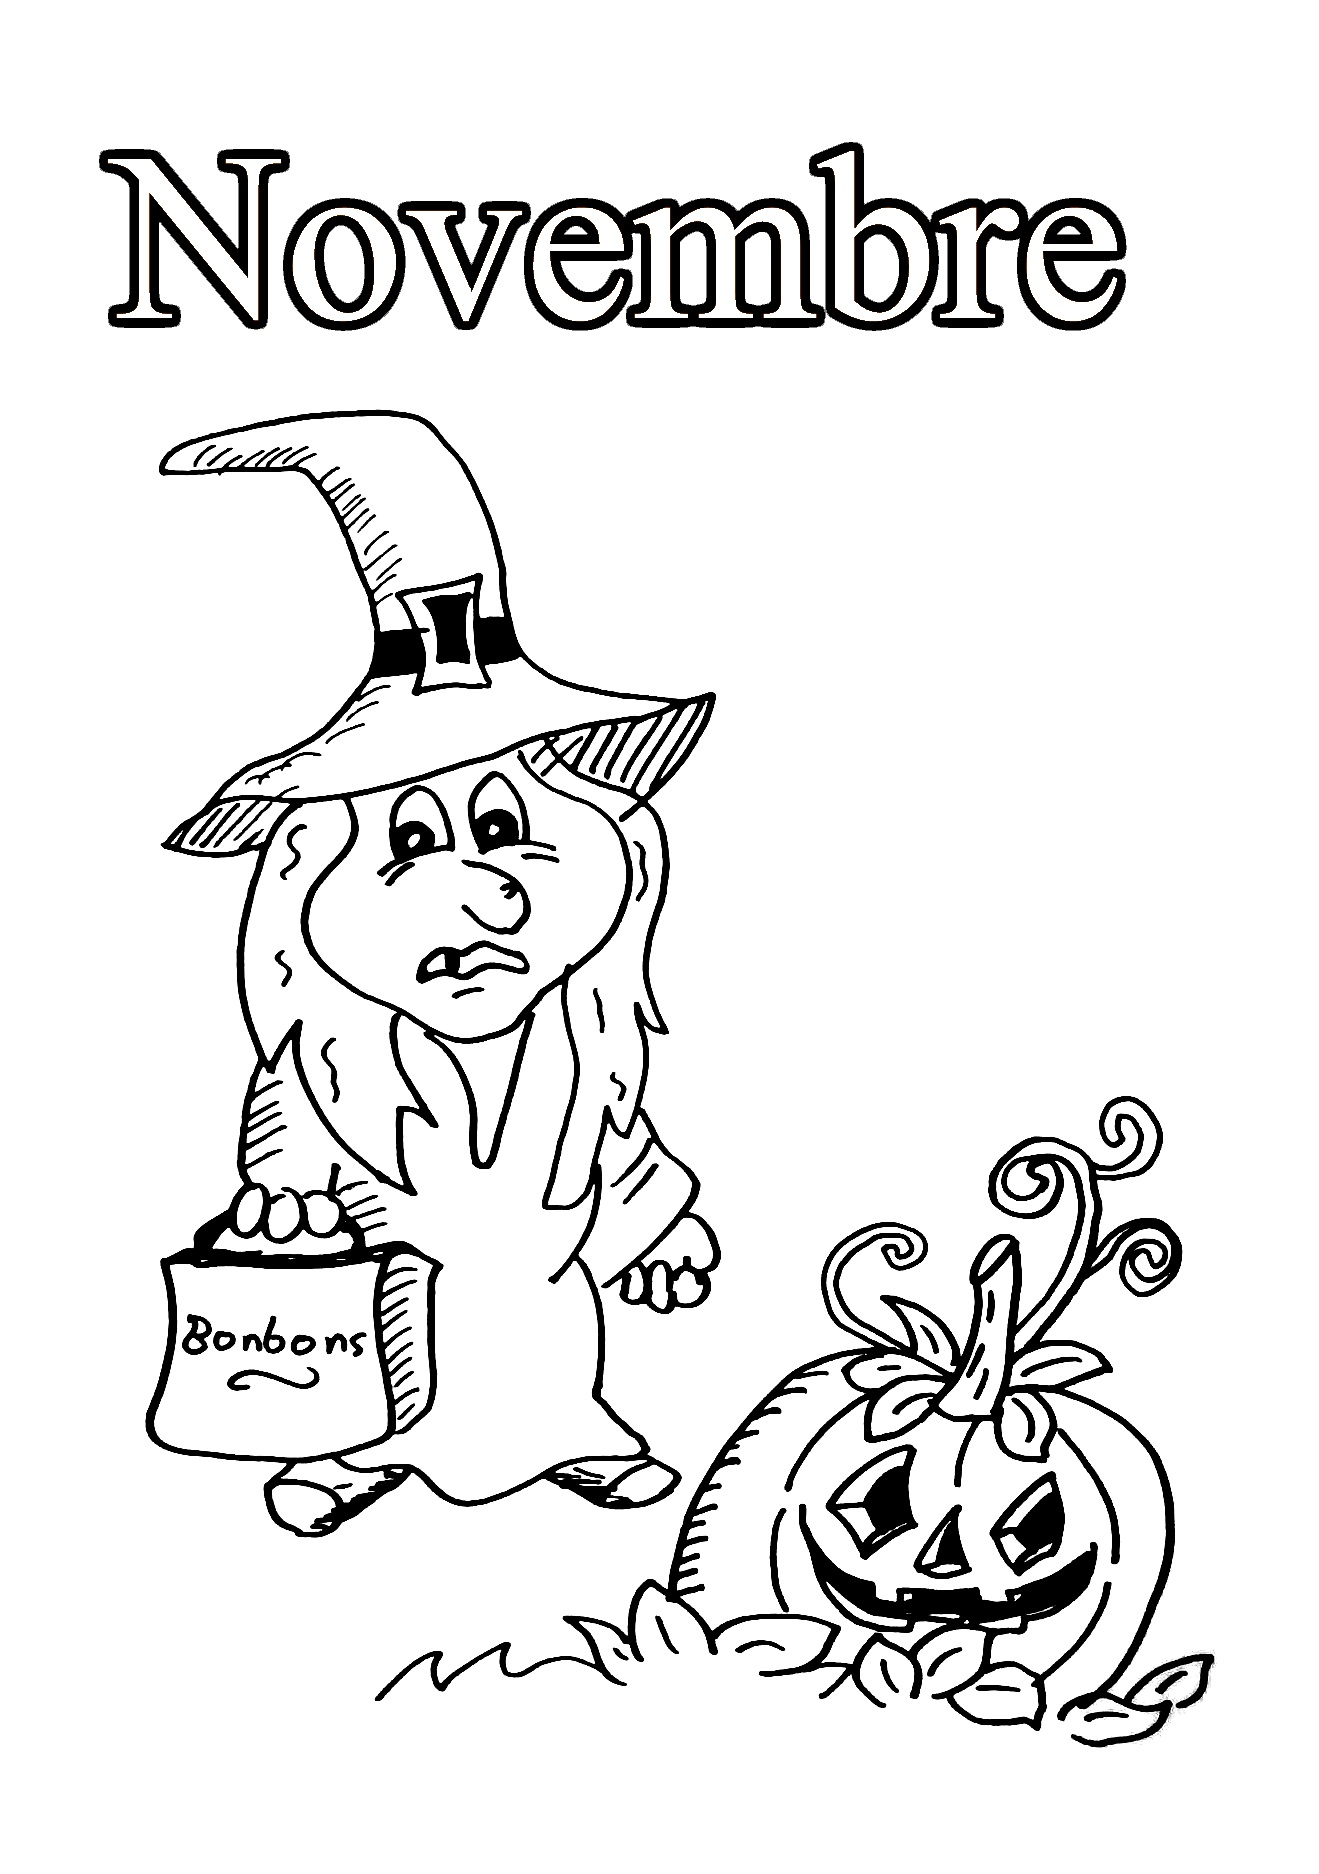 Free Month coloring page to download